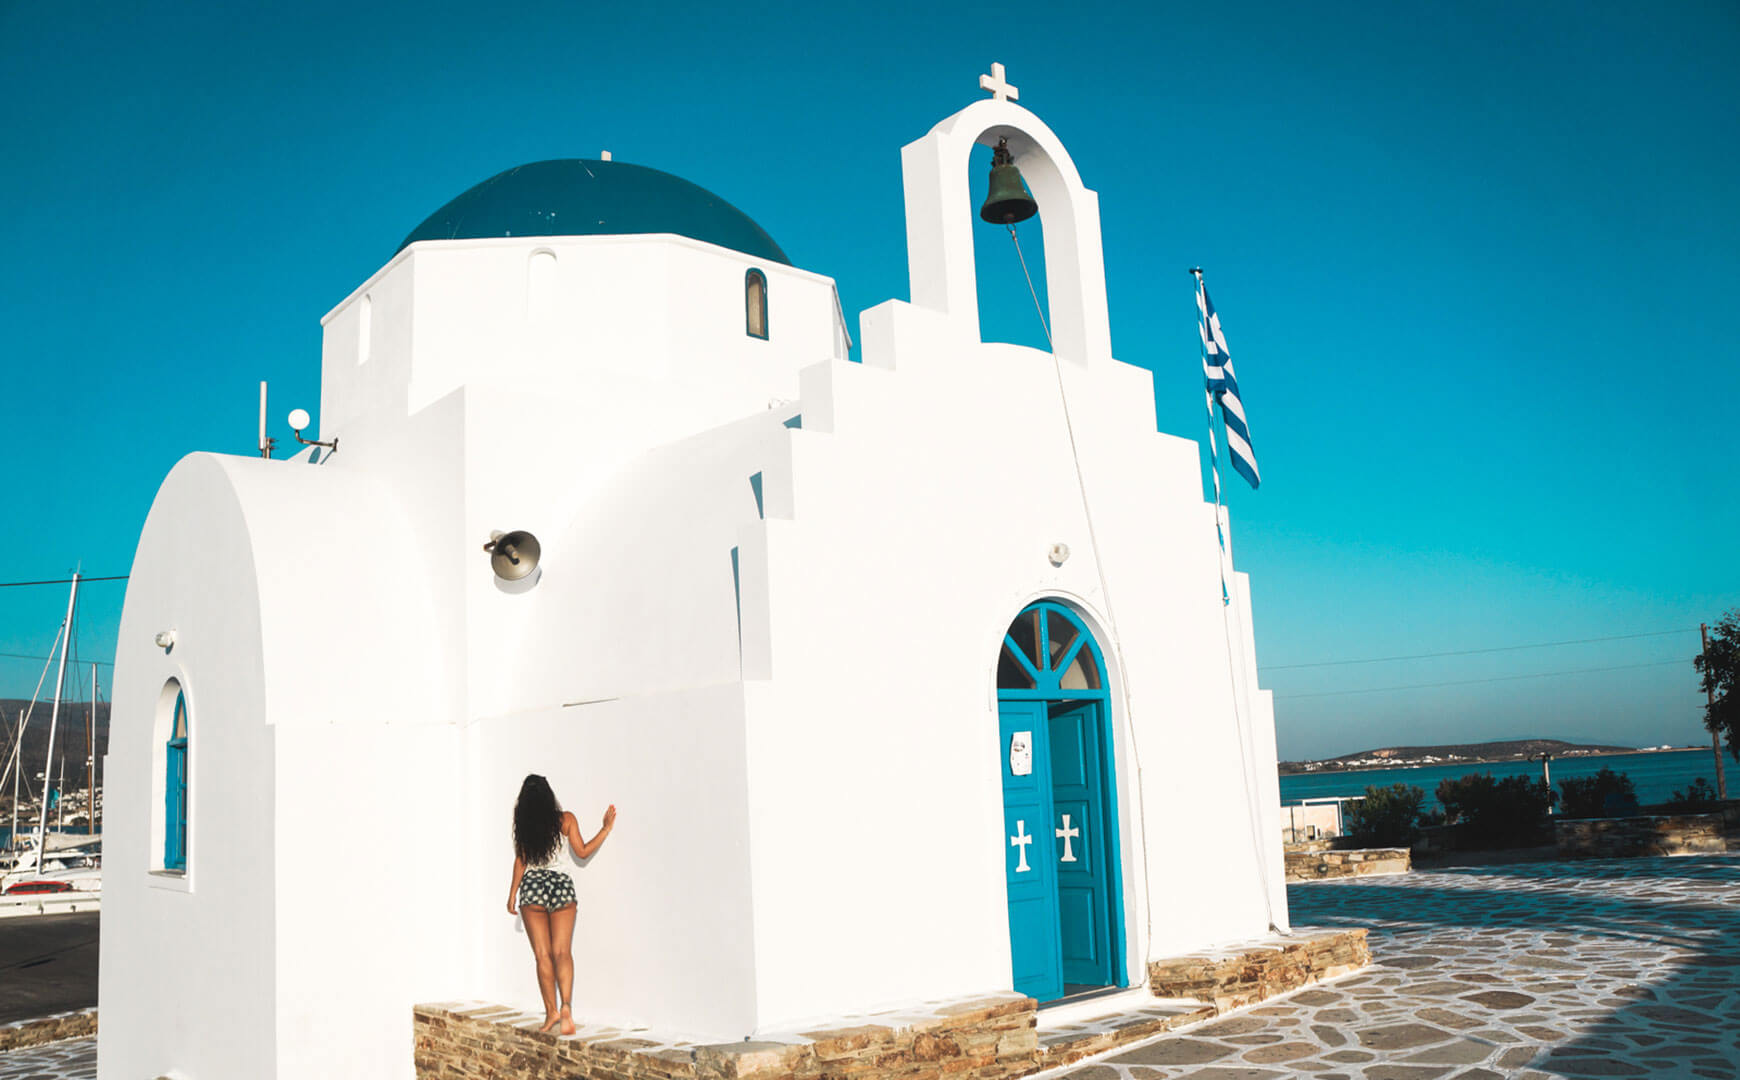 antiparos-greece-la-vie-en-blog-all-rights-reserved-103